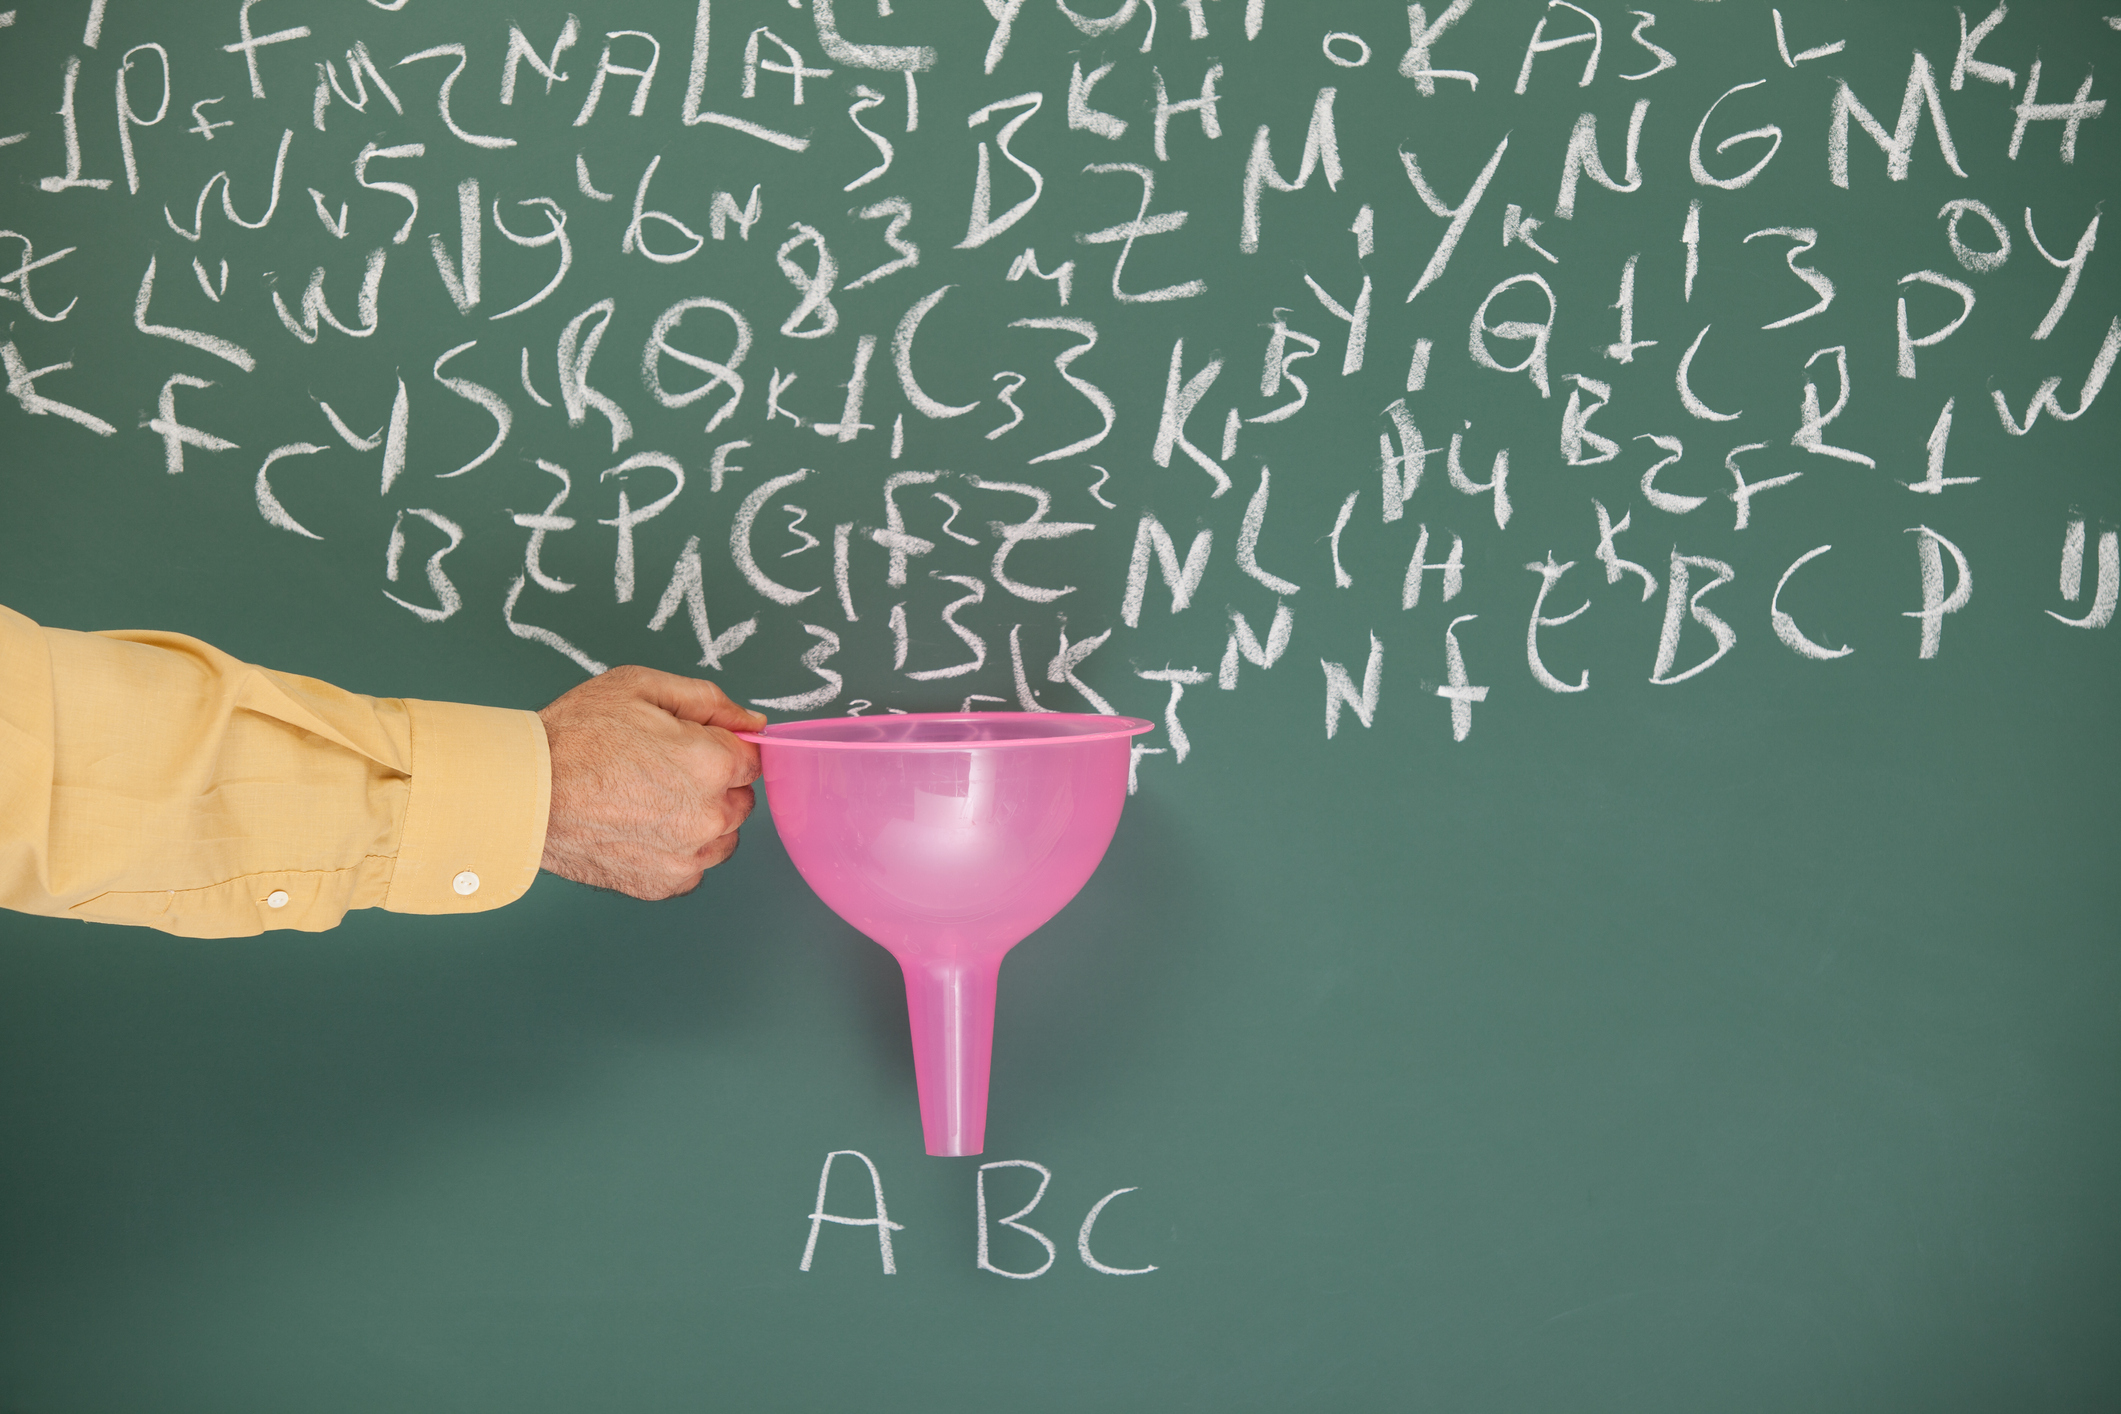 "A funnel in hand of man filtering letters written on blackboard by chalk.Search engine optimization -SEO- concept is aimed.The hand is on the left side of the horizontal frame.The funnel pink color is for having attention on filtering. The letters ""ABC"" is written under the funnel.Taken with a full frame DSLR camera."